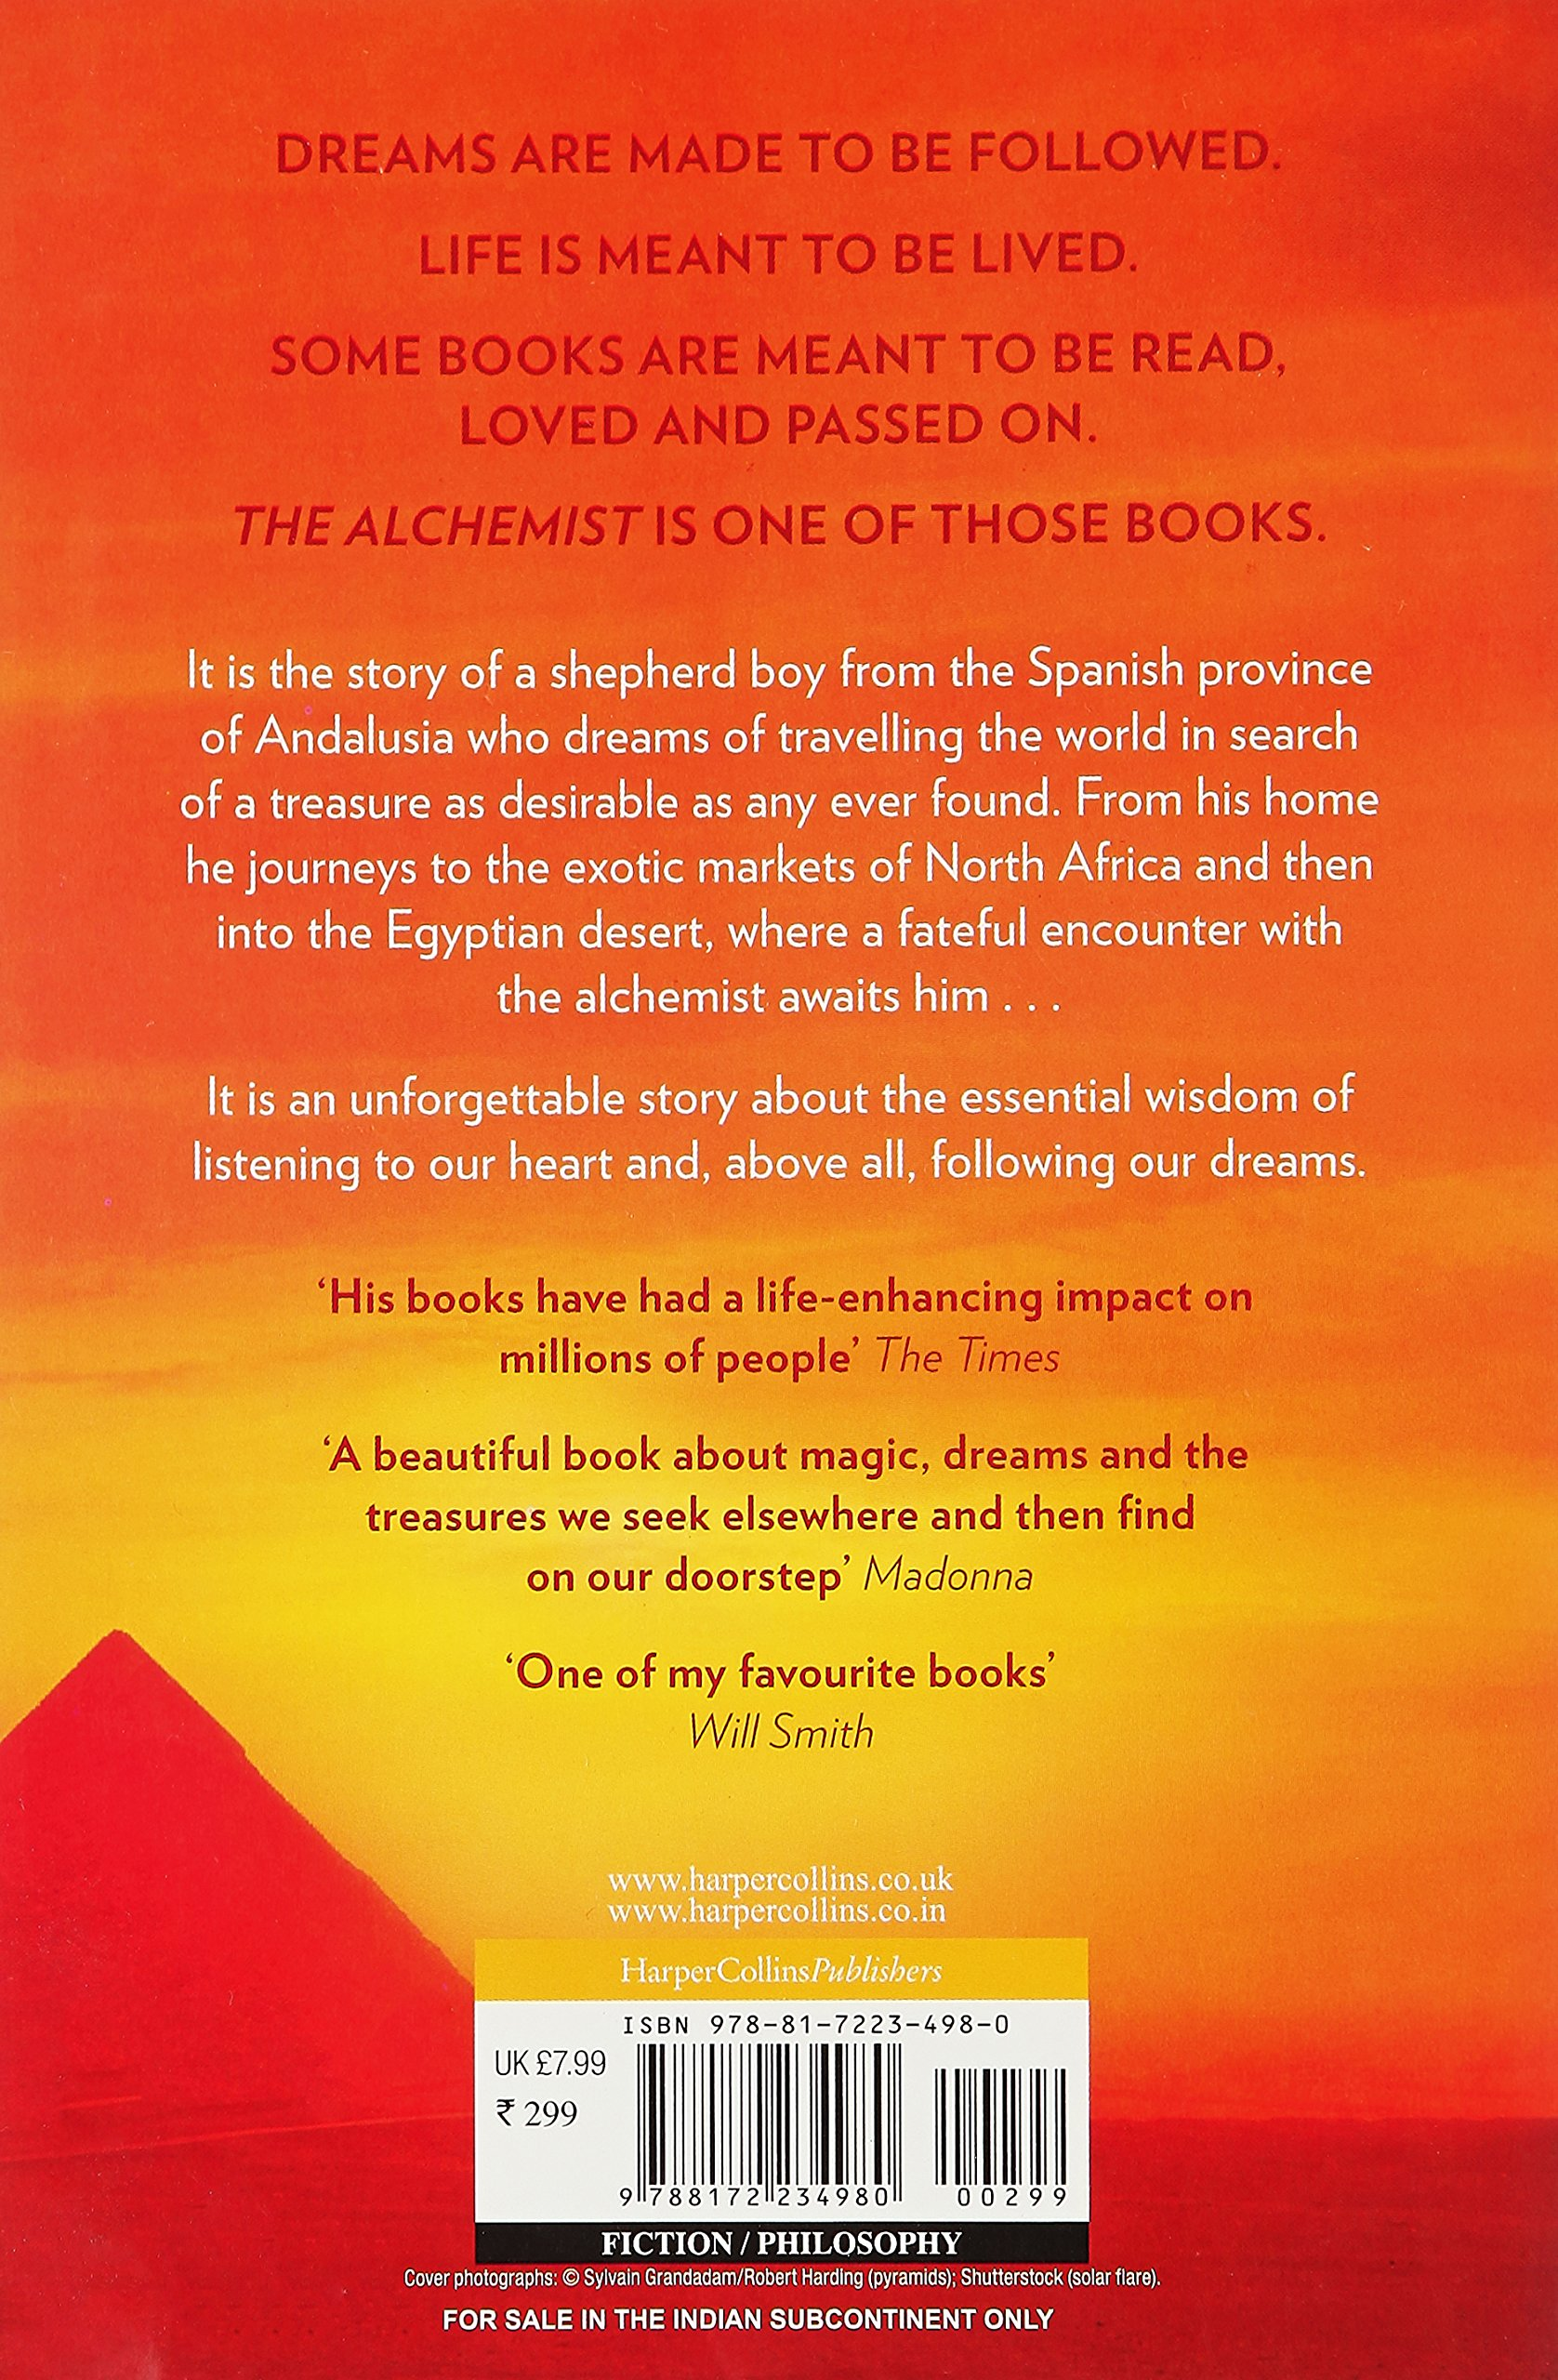 the alchemist amazon co uk paulo coelho alan r clarke  the alchemist amazon co uk paulo coelho alan r clarke 9788172234980 books